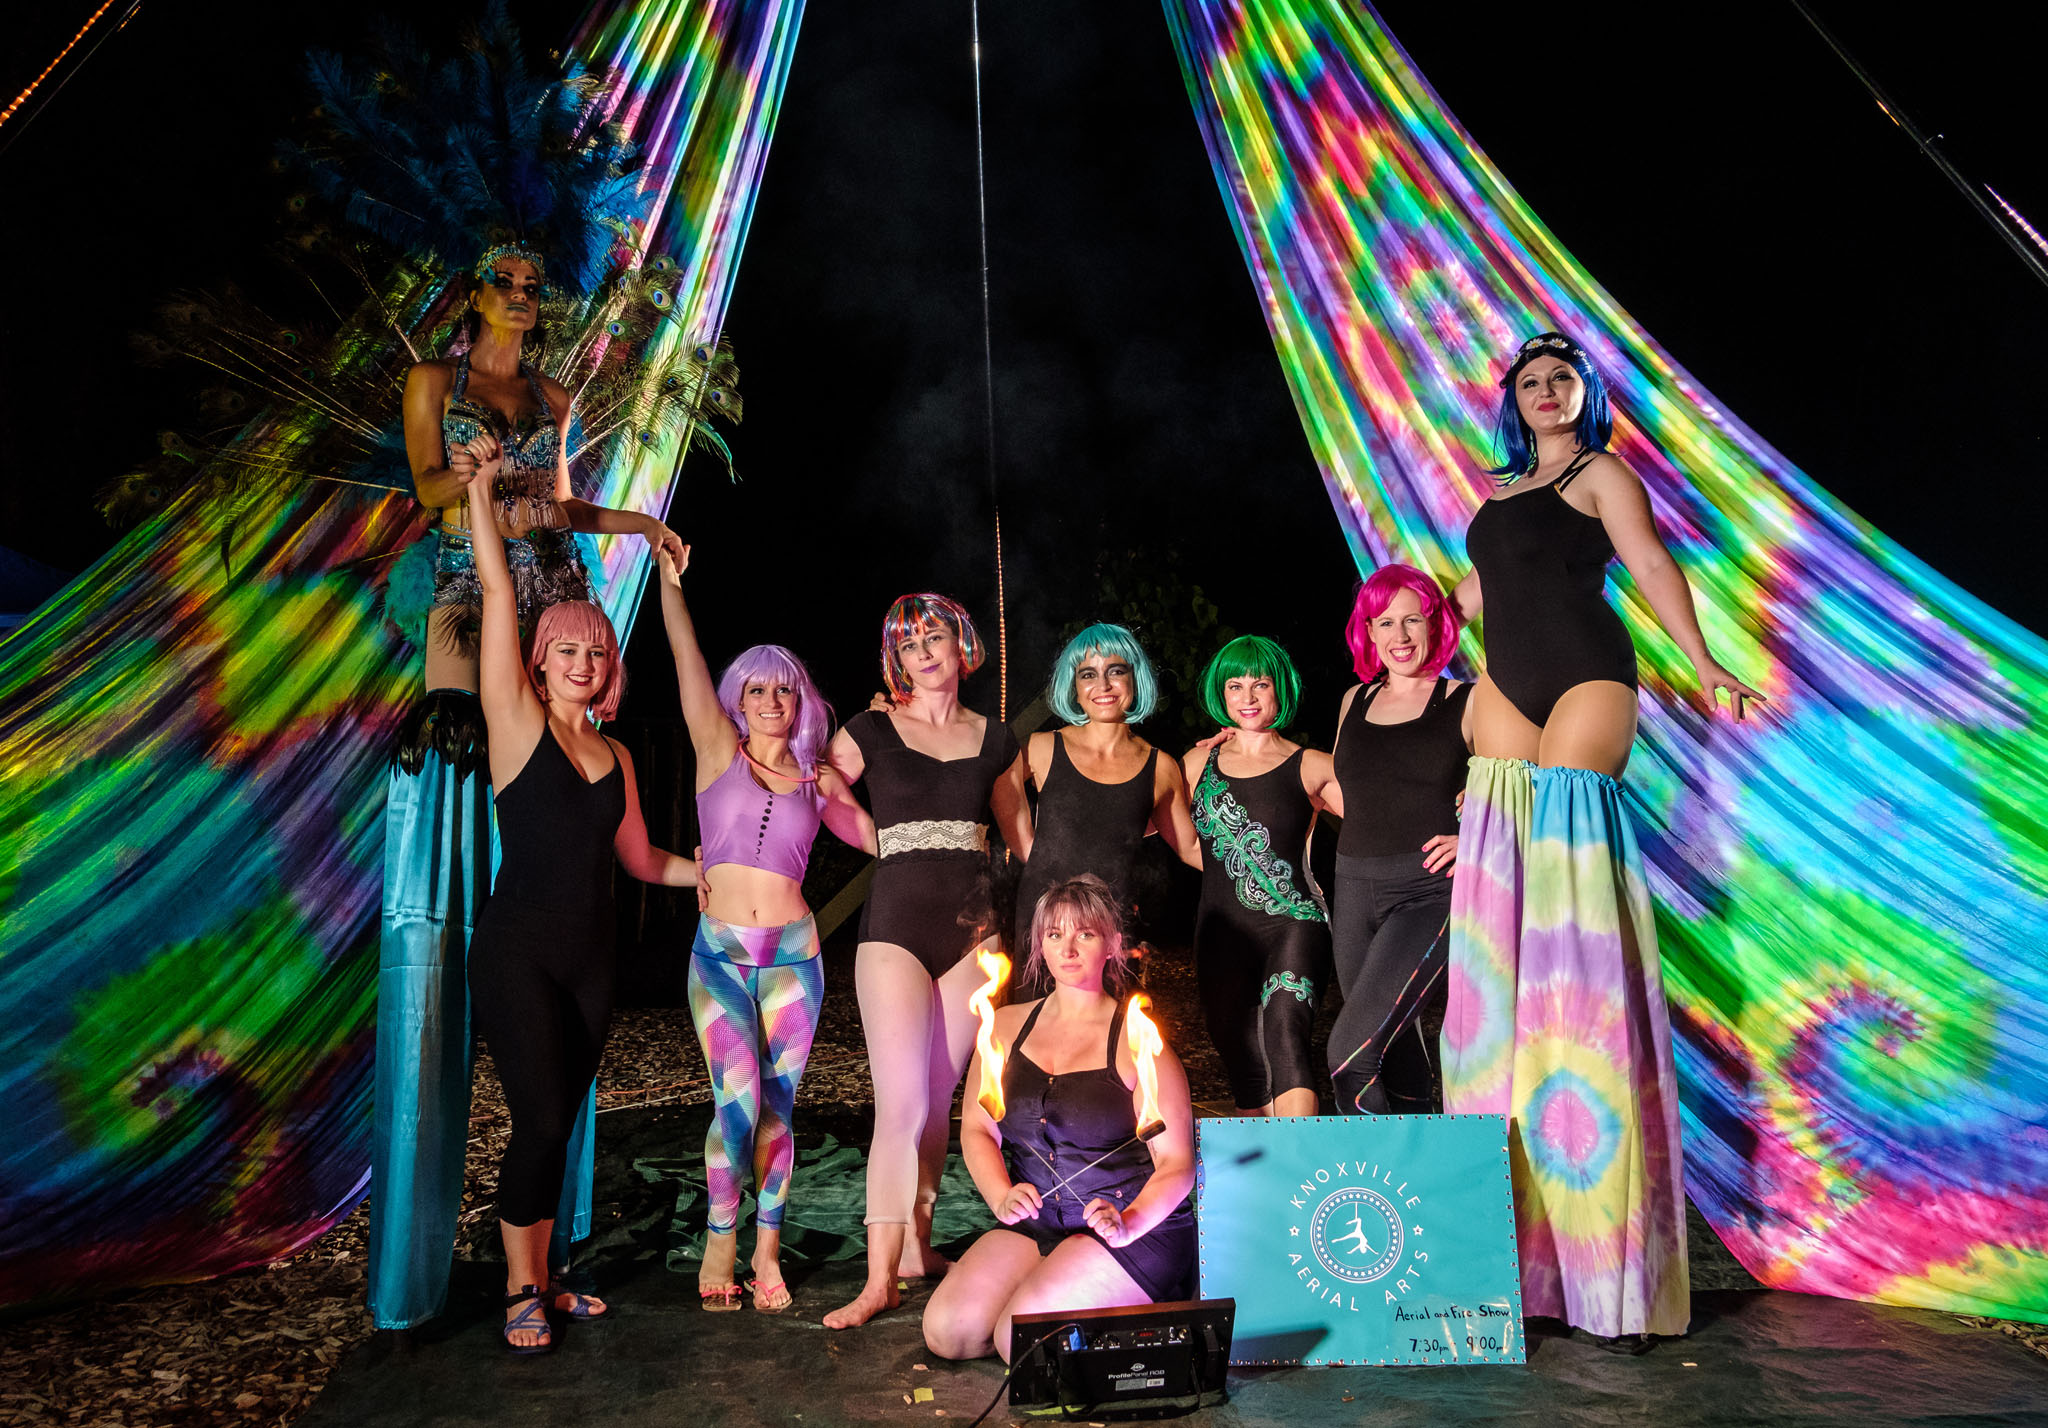 Independent performer, Angel Noble (far left), towered above the other performers on her stilts.